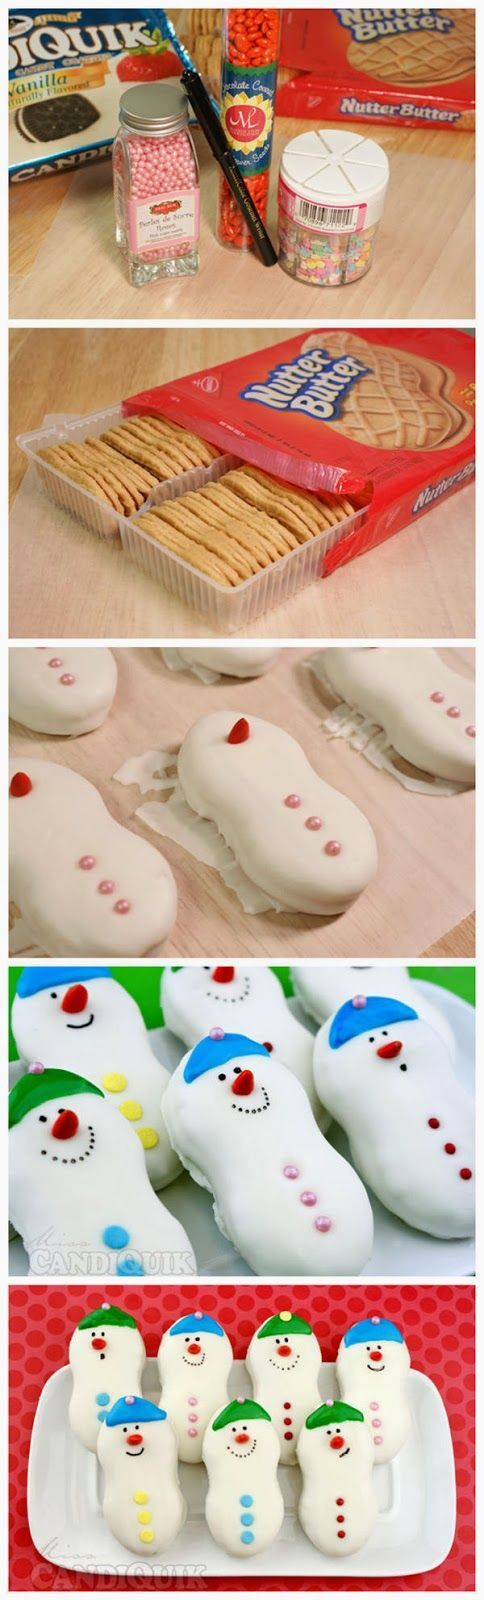 Snowmen cookies: Nutter Butter dipped in melted white chocolate. orange-chocolate covered sunflower seed for nose. fruit roll ups for hat. colored icing for eyes and mouth.